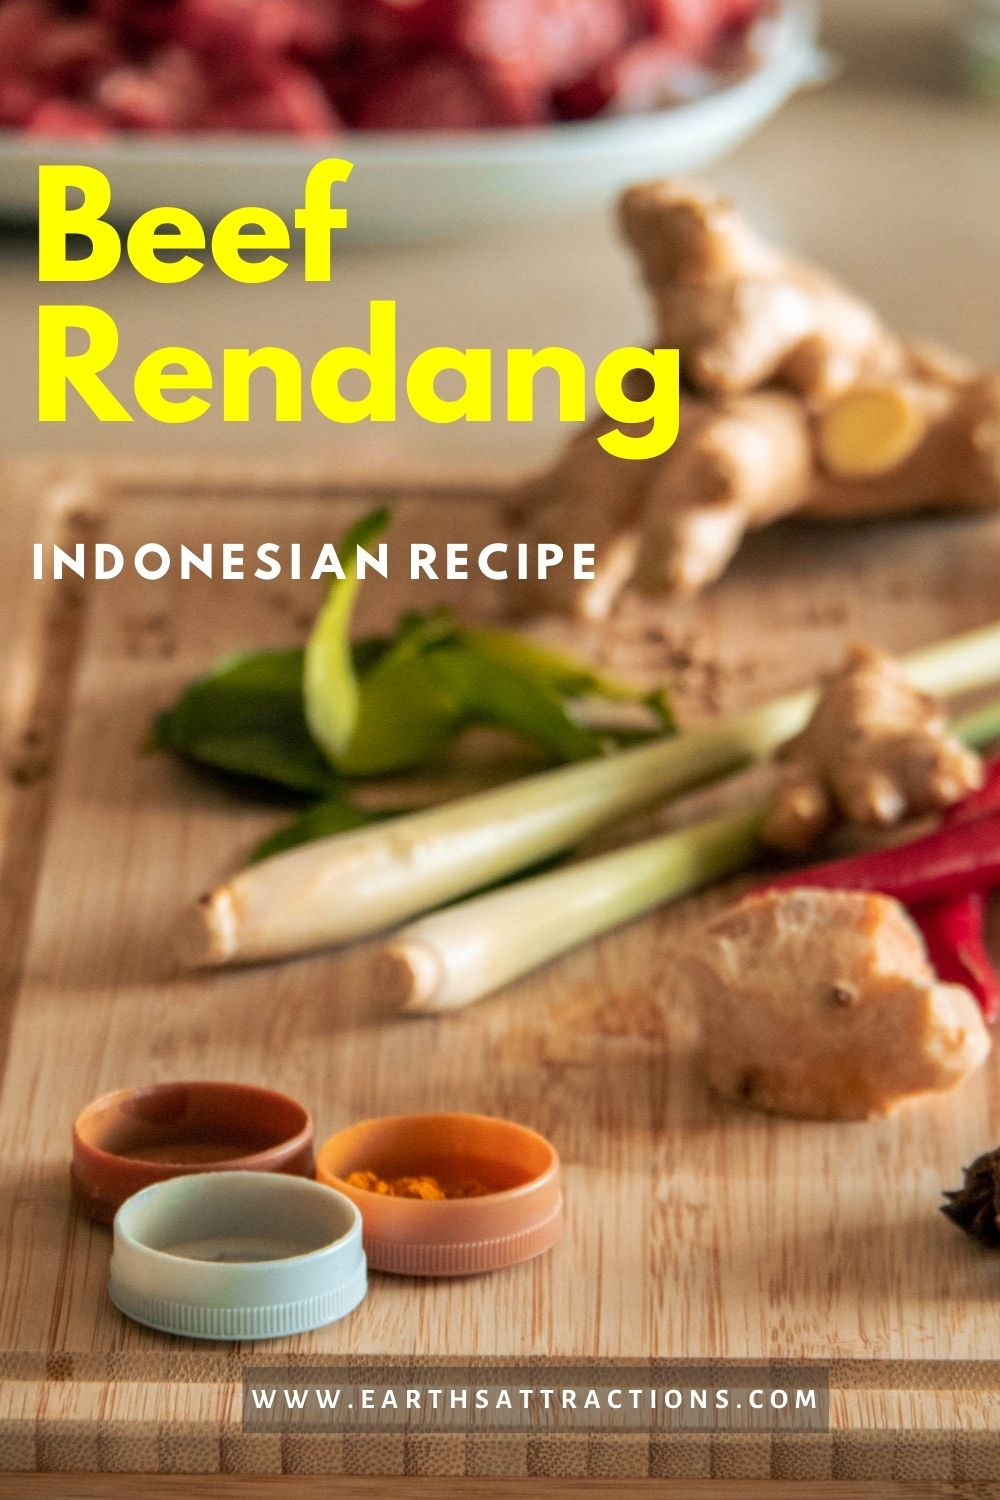 Traditional Indonesian Beef Rendang Recipe. What is beef rendang and how to make Indonesian beef rendang. Easy beef rendang recipe! #beefrendang #indonesia #recipe #beefrendangrecipe #asiatravel #food #asianfood #earthsattractions #dish #populardish #meatdish